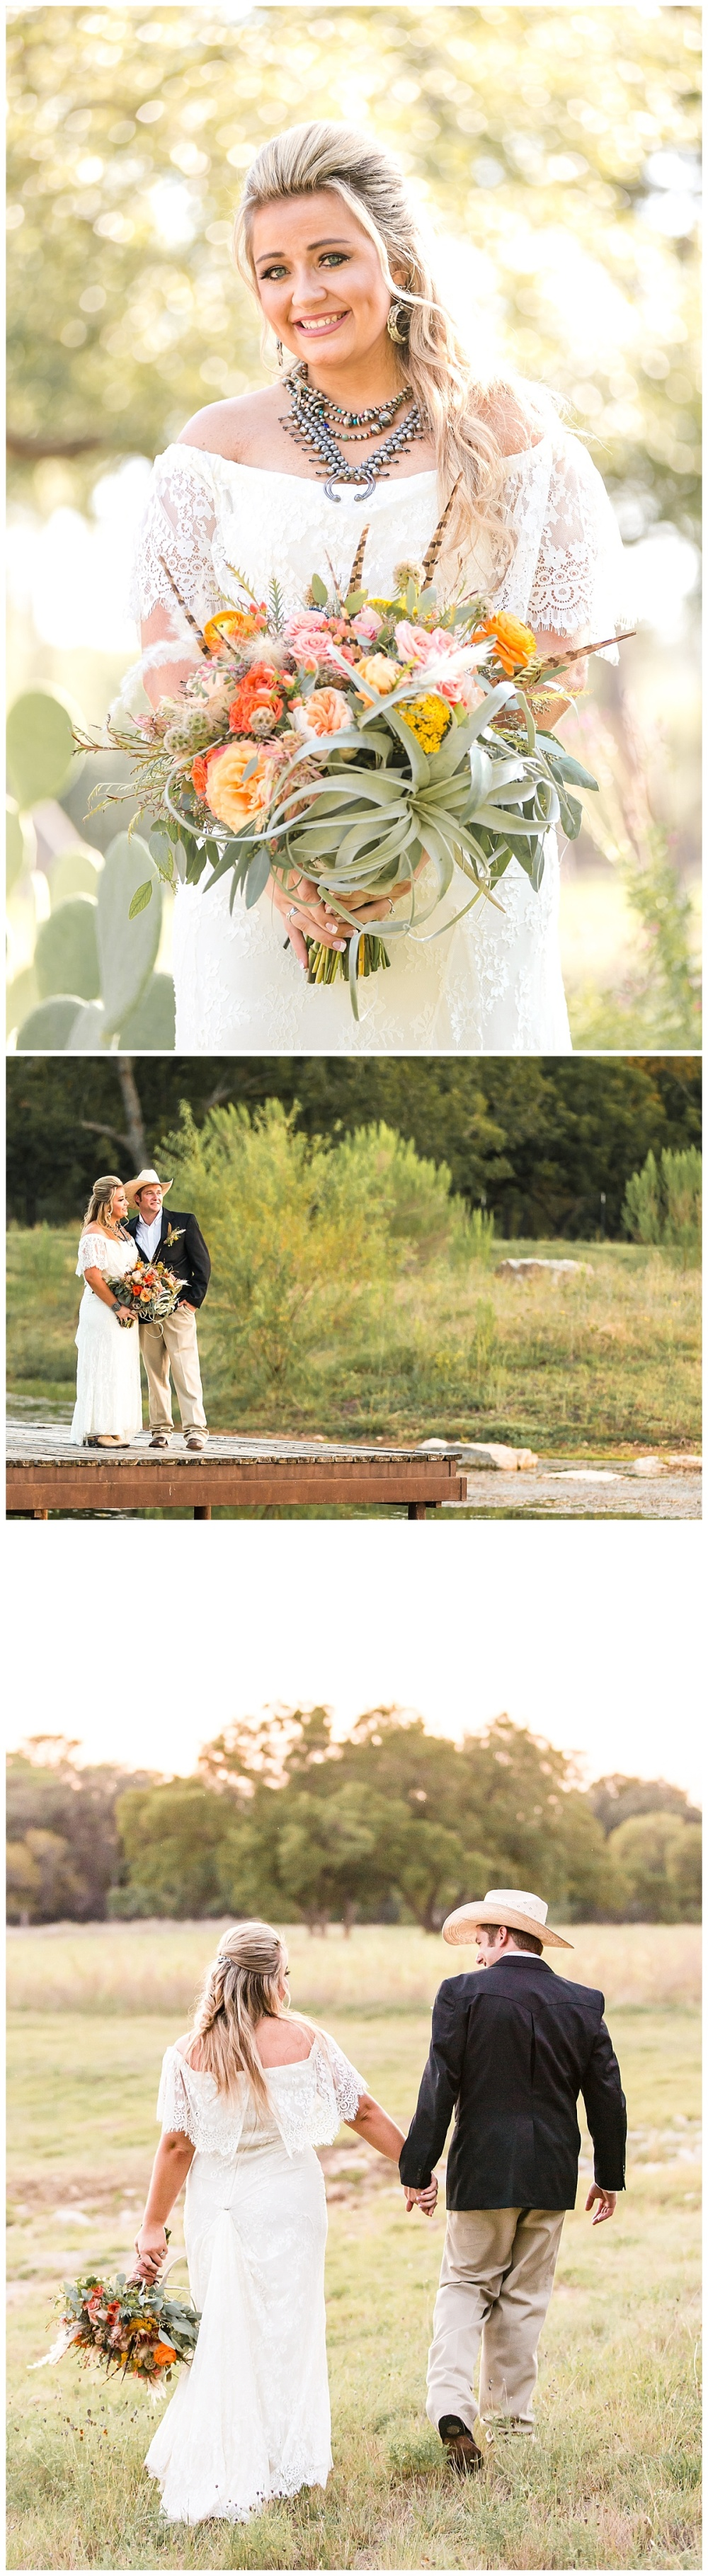 Texas-Wedding-Photographer-Braded-T-Ranch-Kendalia-Bride-Groom-Southwestern-Style-Carly-Barton-Photography-Vogt_0052.jpg